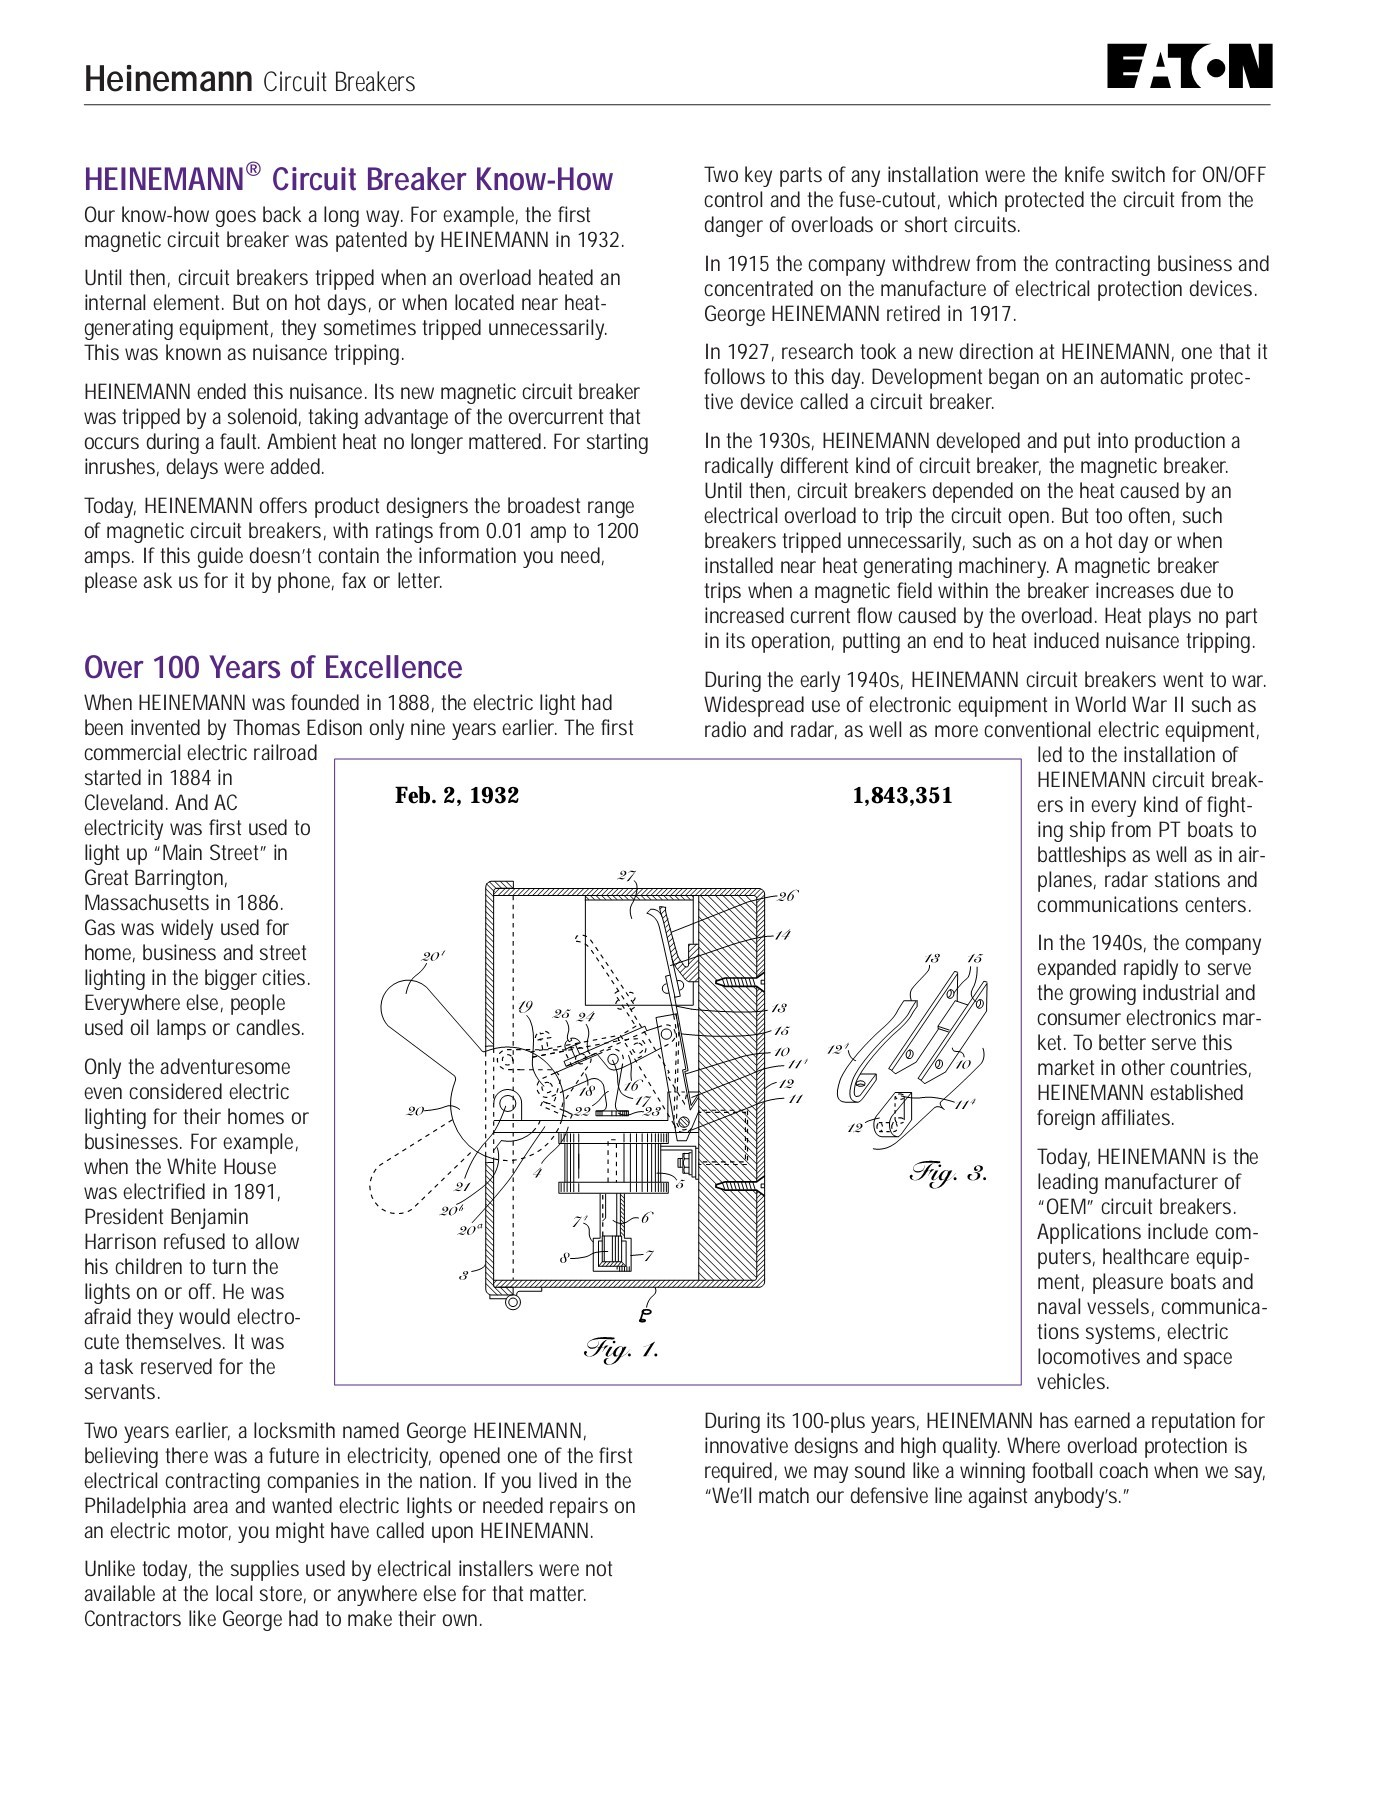 hight resolution of the power of reliability heinemann electric cda ltd pages 1 16 text version fliphtml5